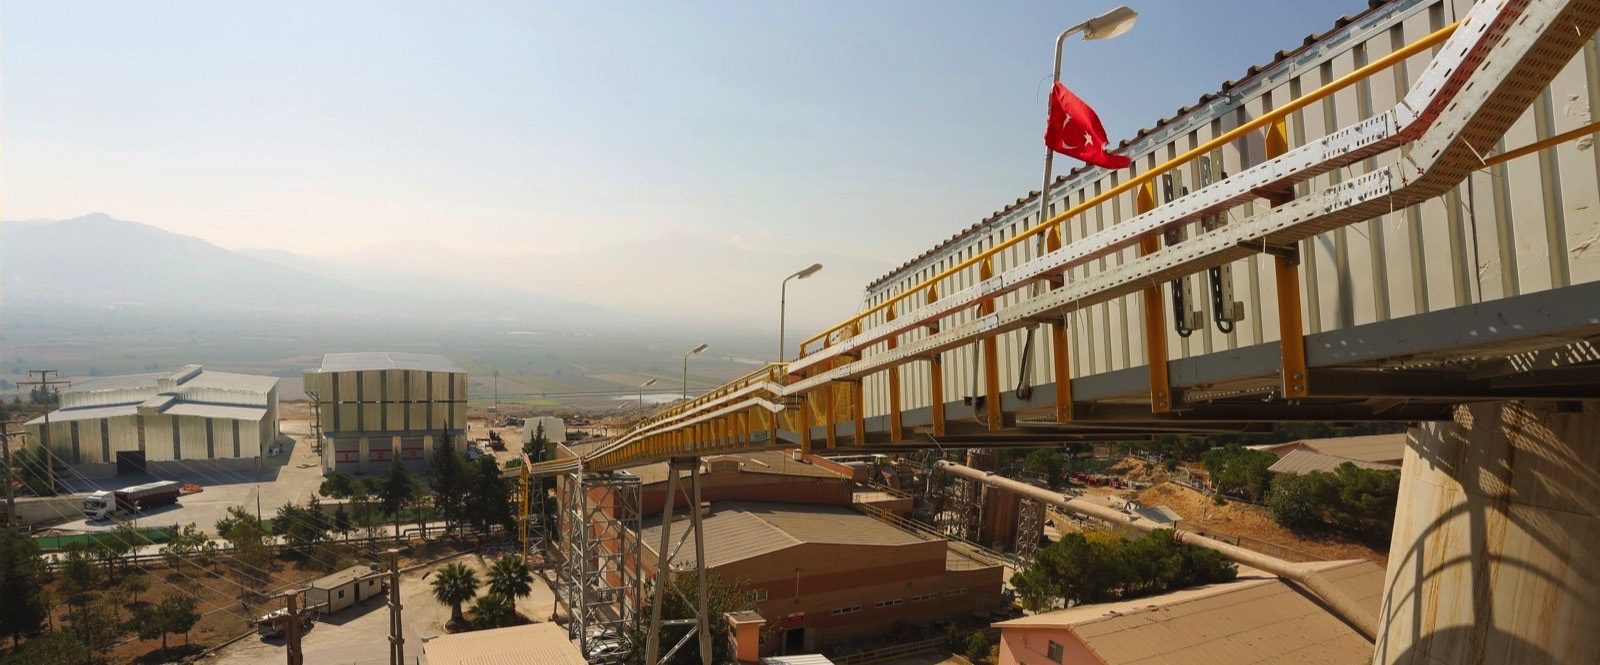 Cement Manufacturer relies on BEUMER Pipe Conveyors for clean, safe and fast Fuel Feed